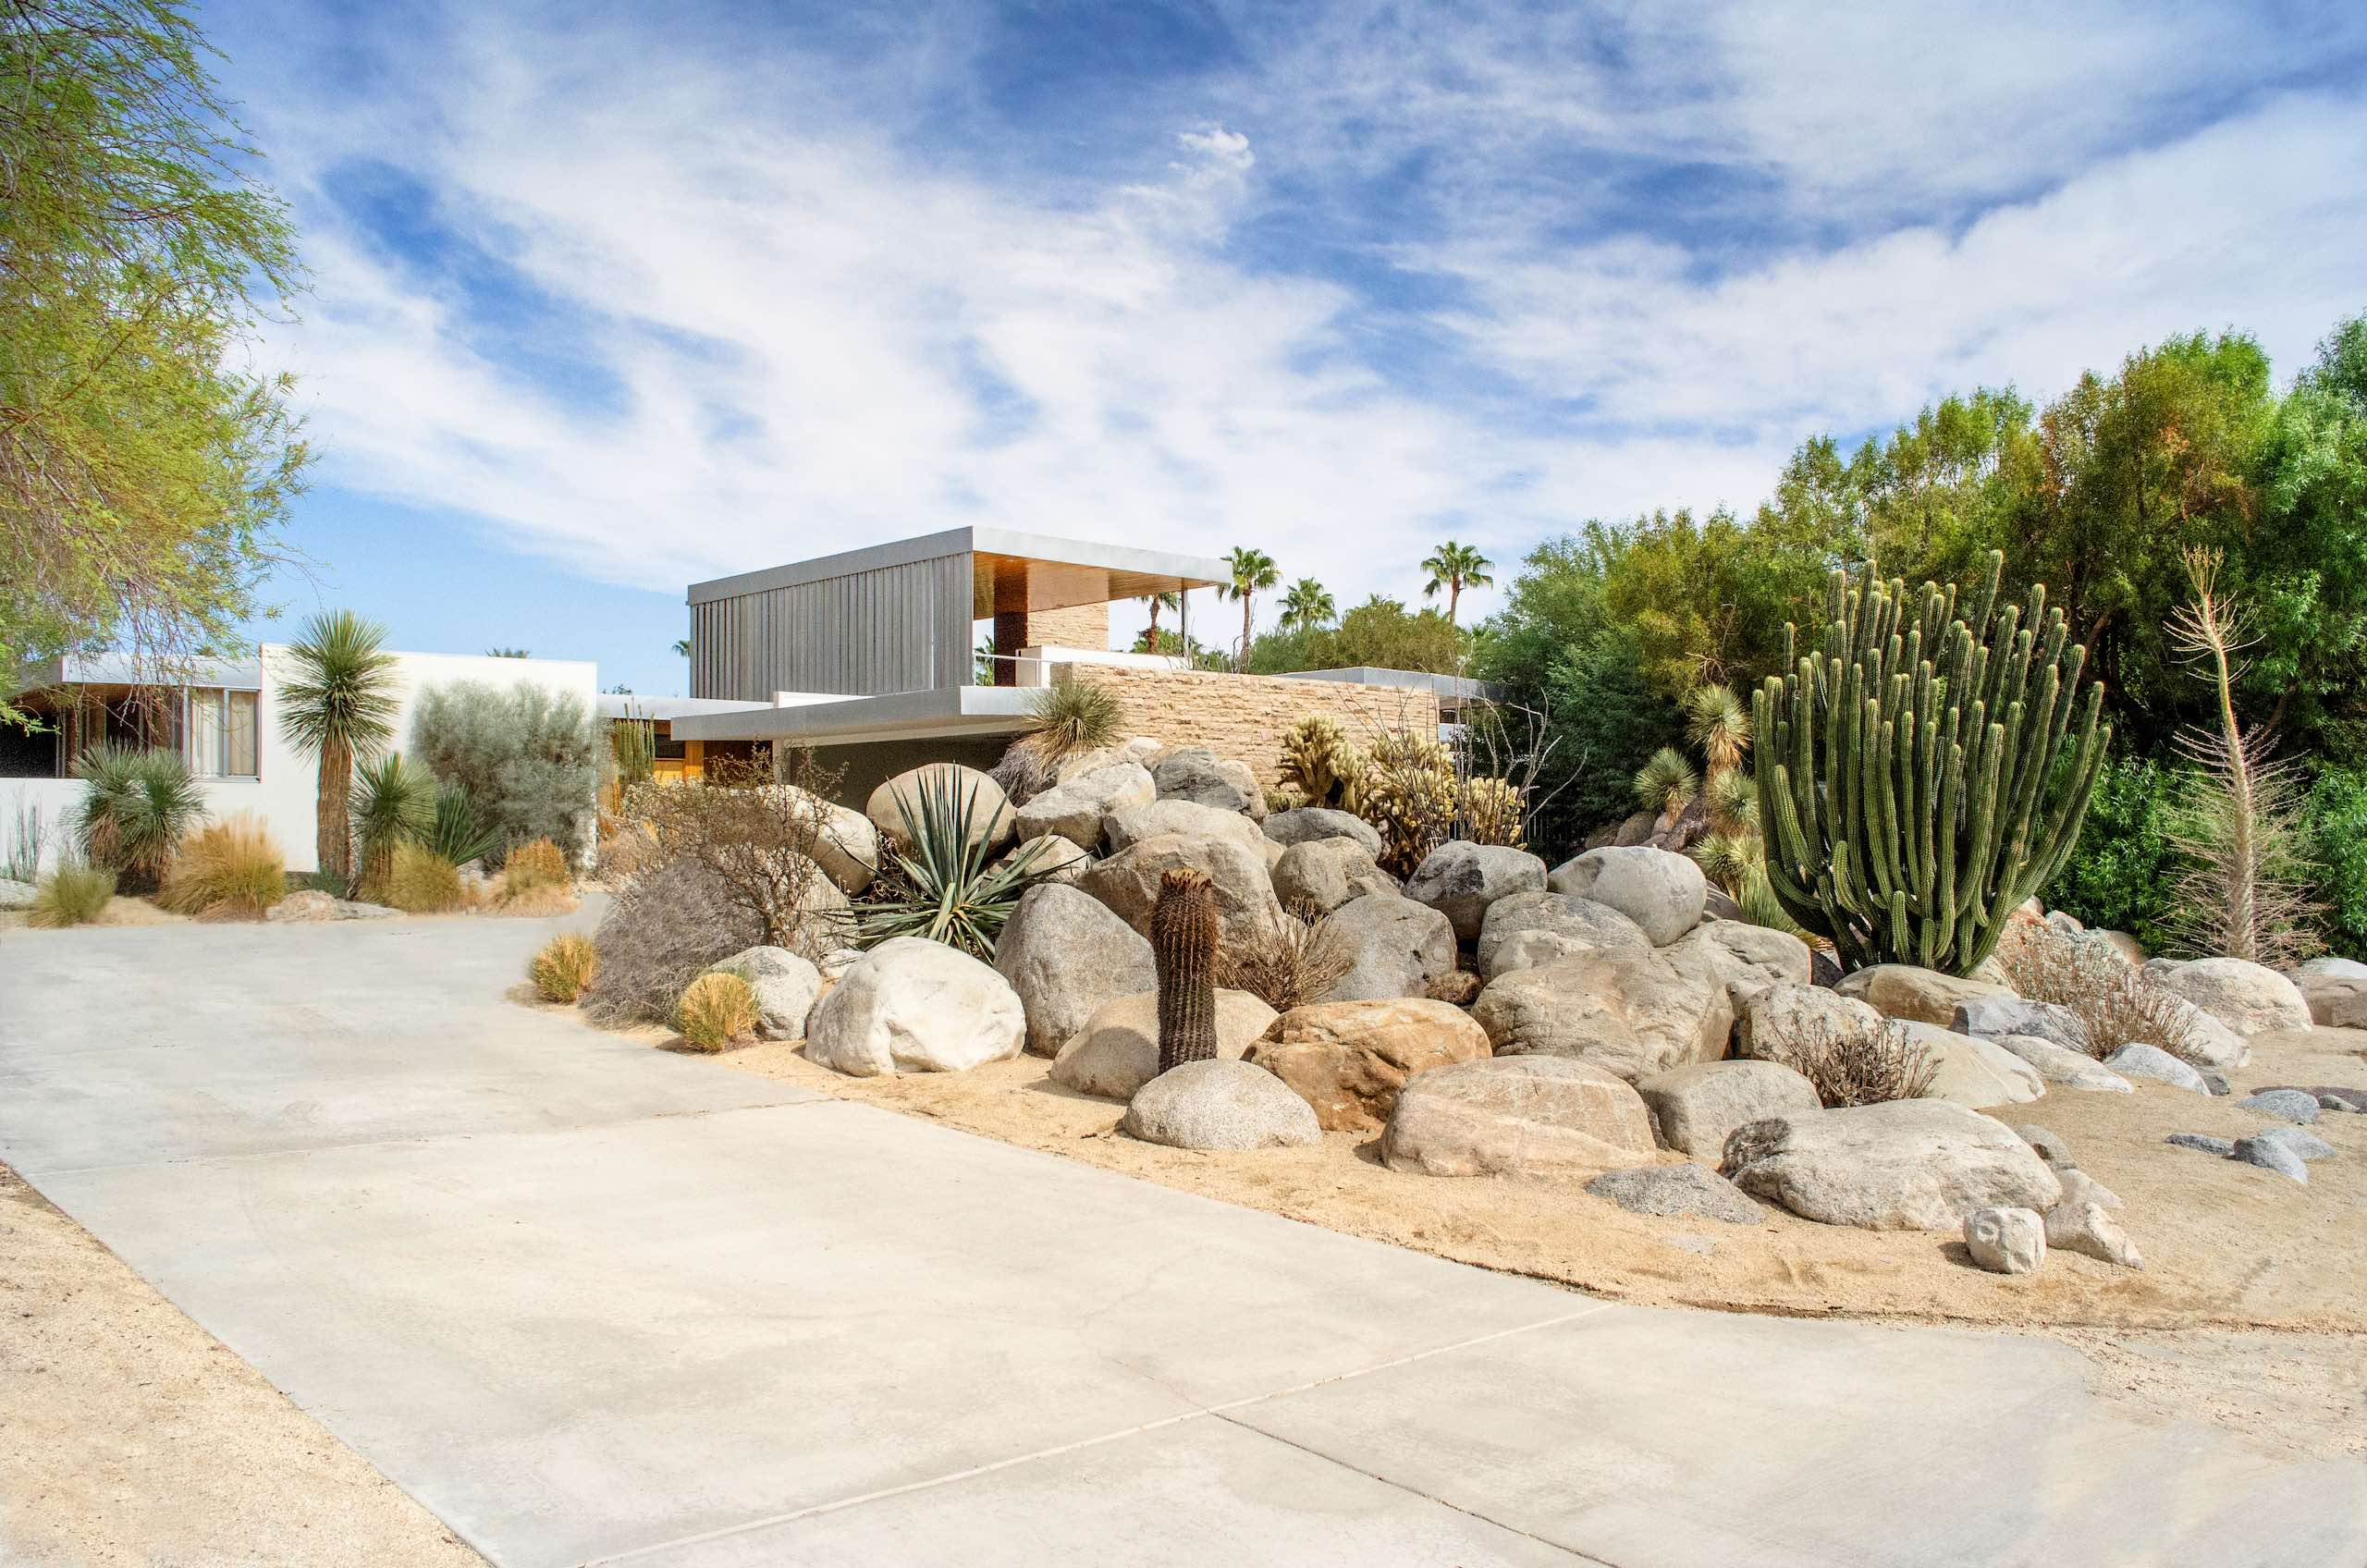 Richard Neutra's Kaufmann Desert House | Photo: David Everett Strickler